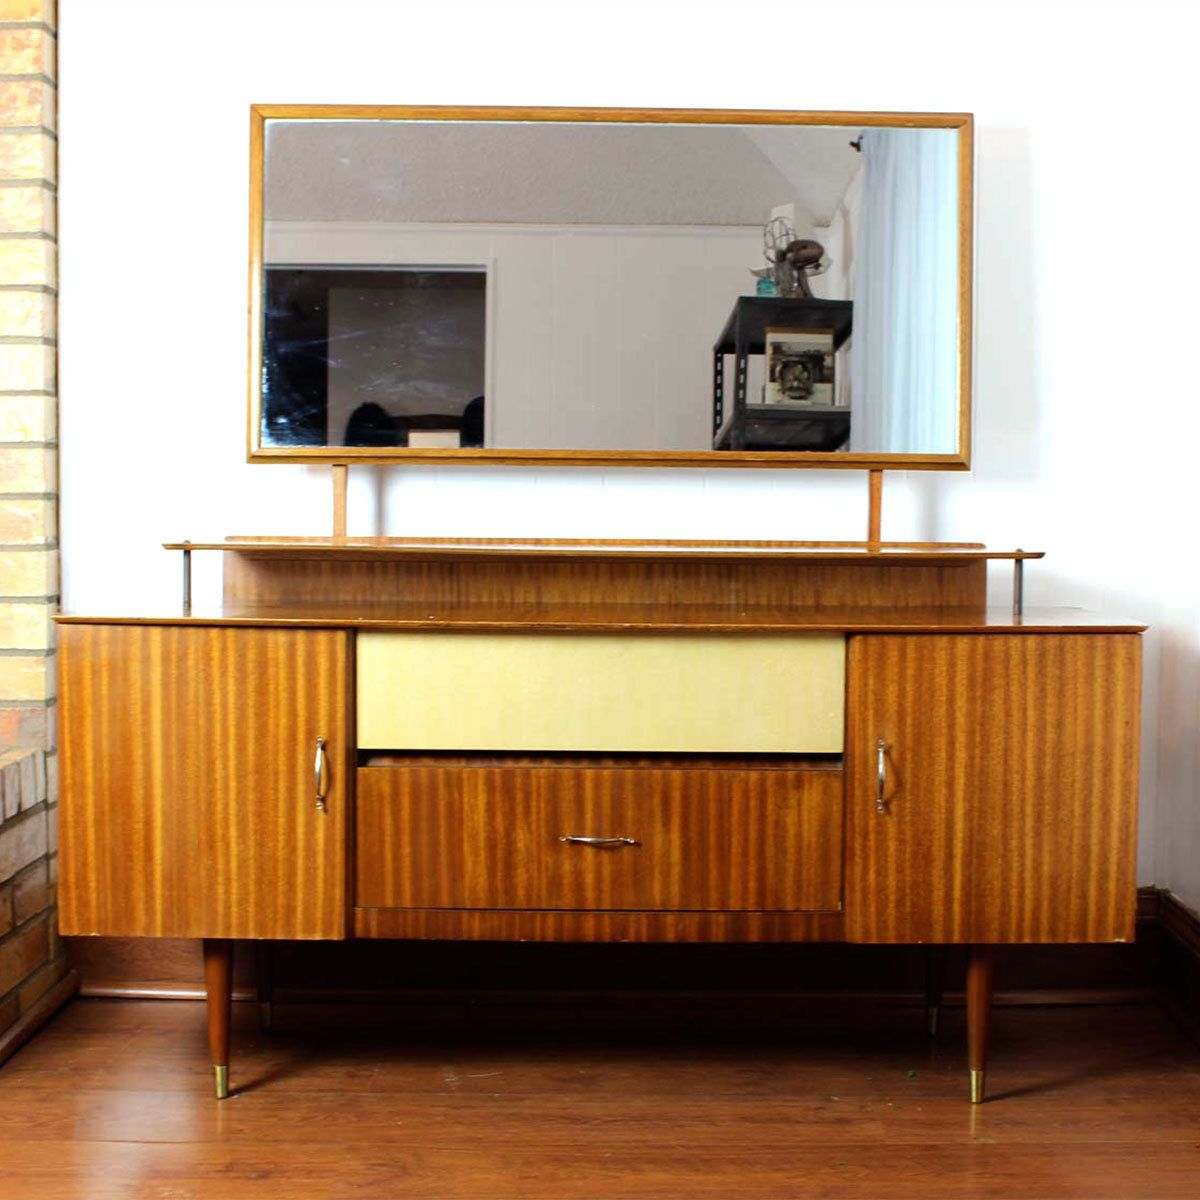 Great Priced Furniture: Retro Betties Have This Mid-century Modern Vintage Piece